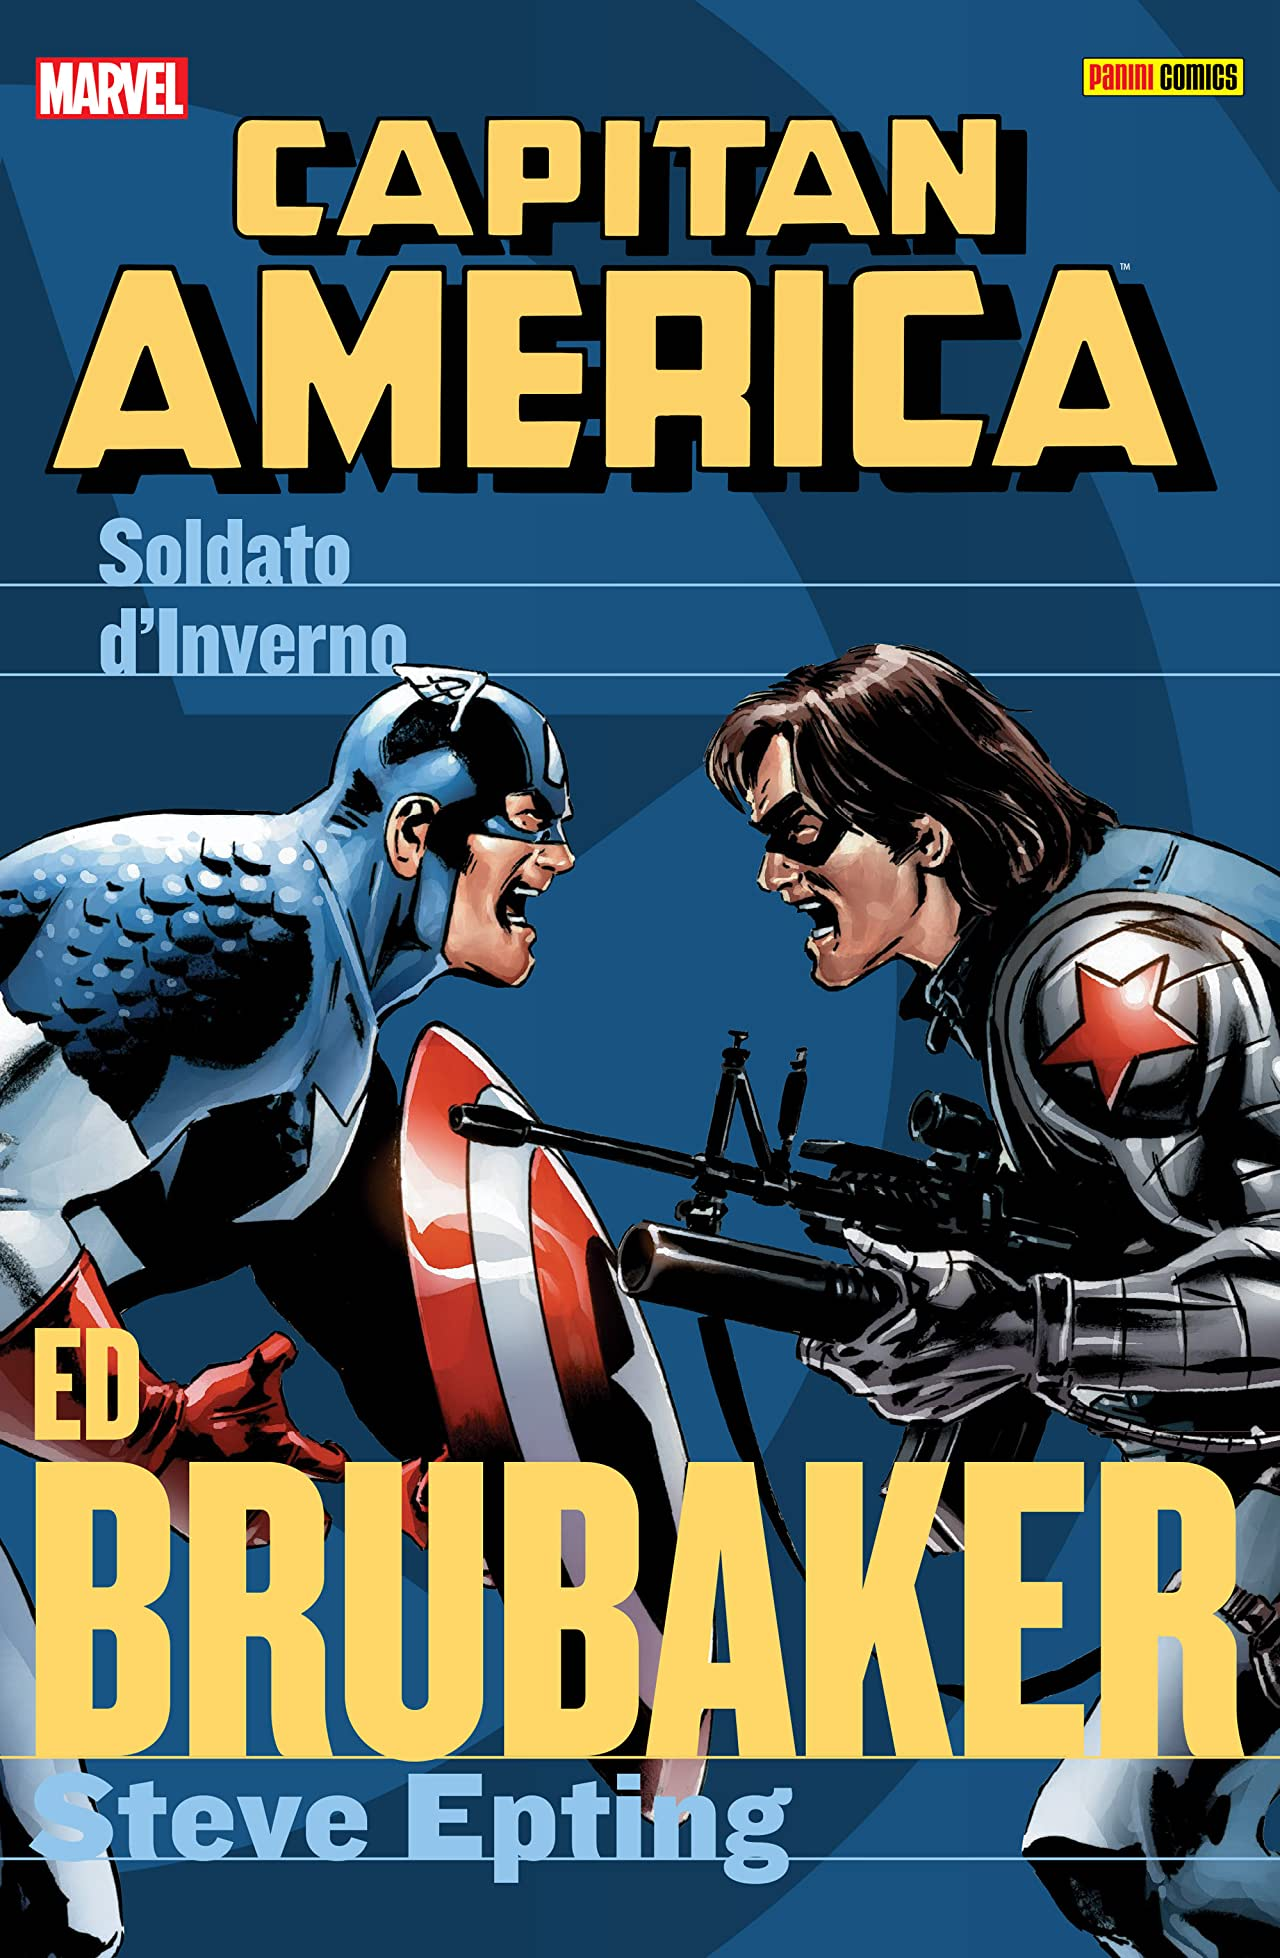 Capitan America Brubaker Collection Vol. 2: Soldato D'Inverno